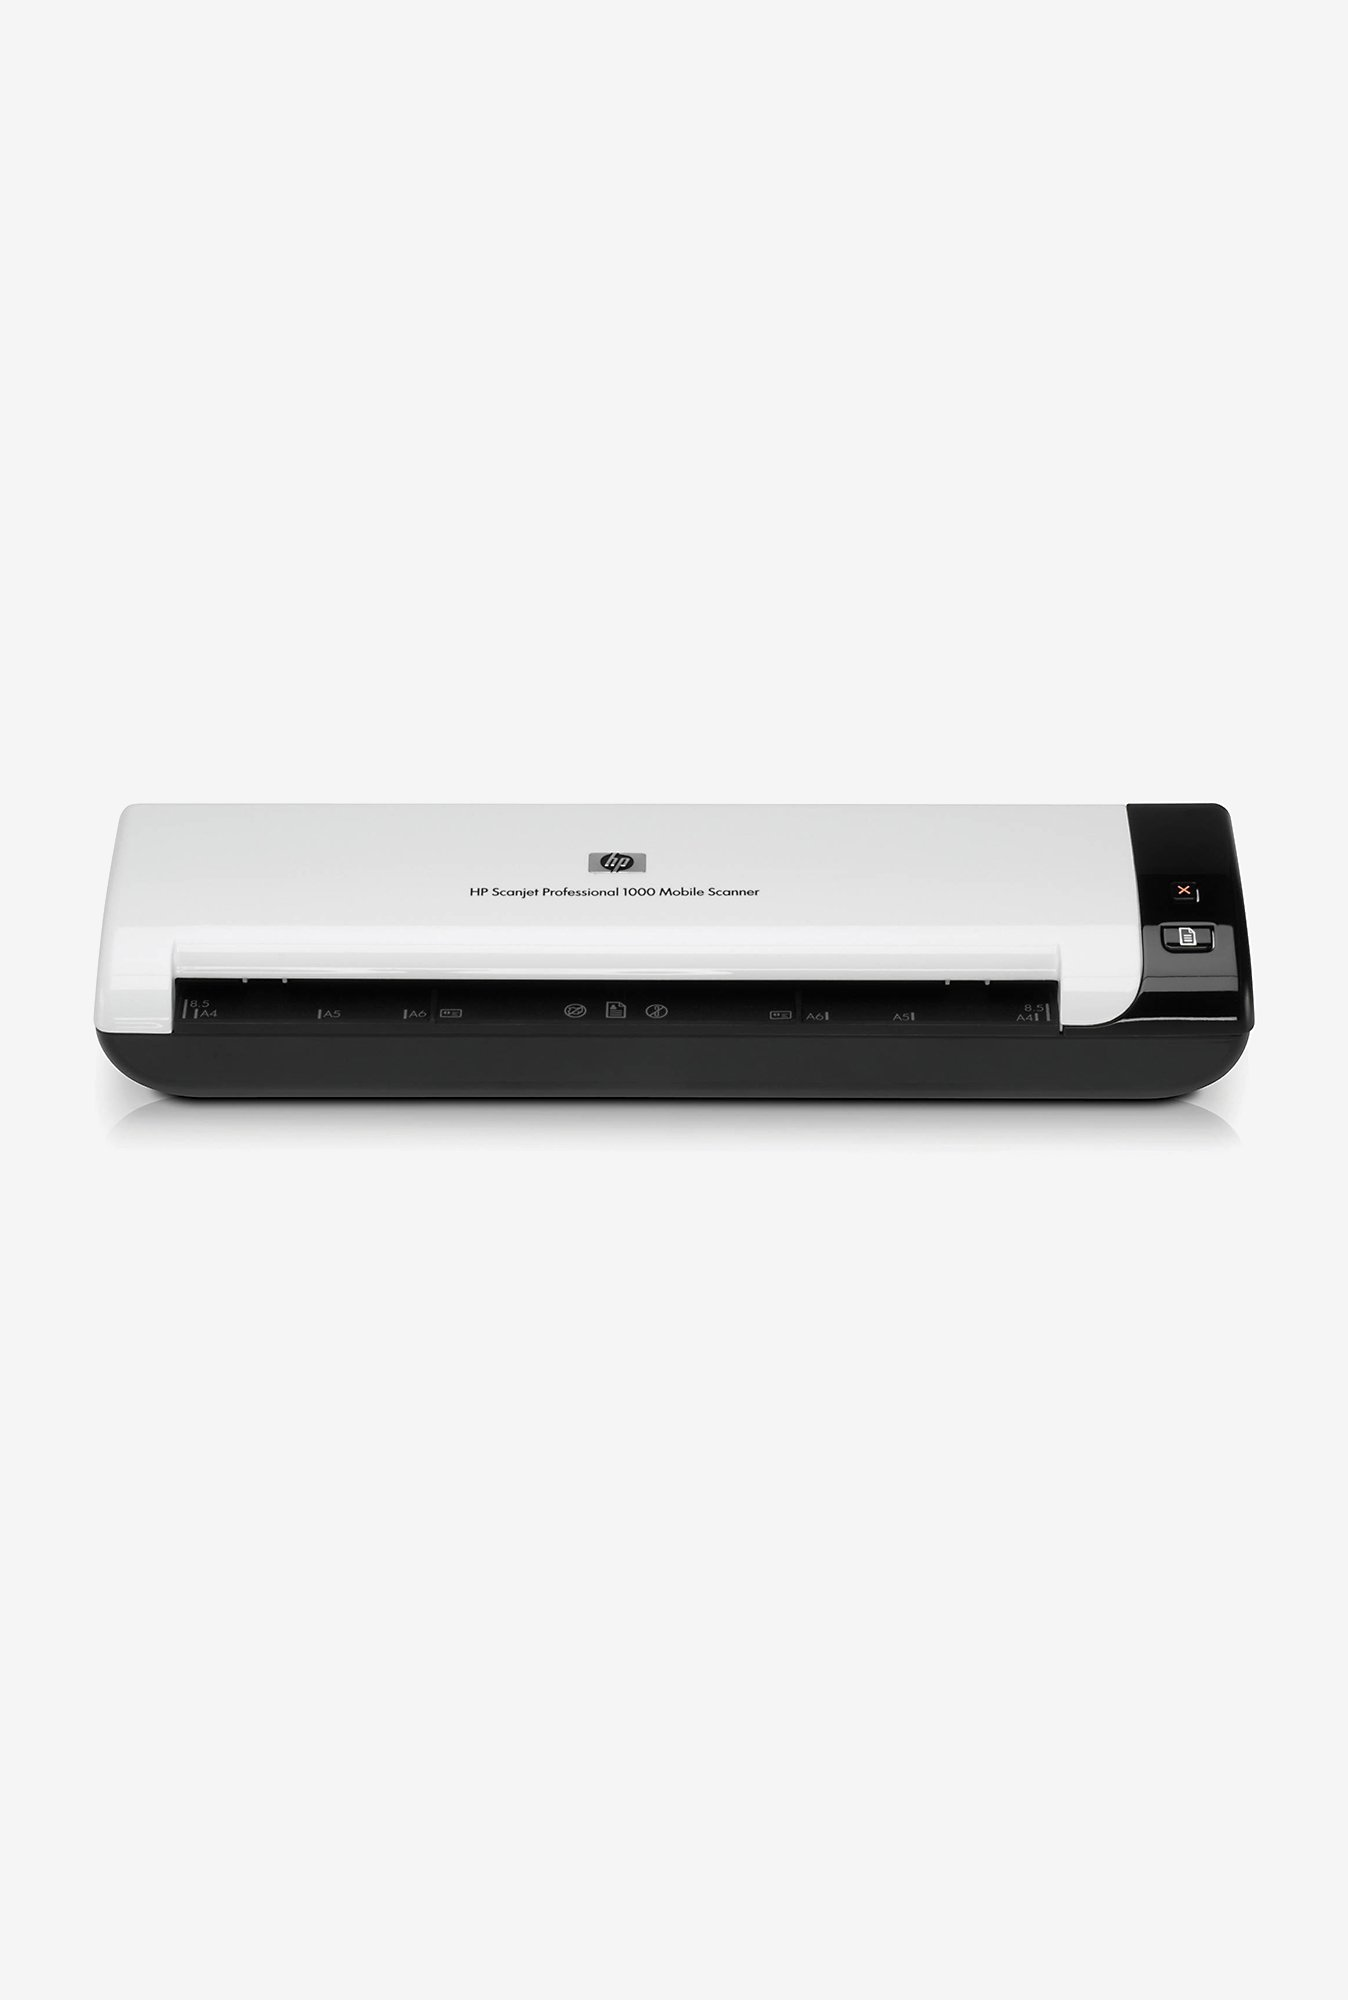 HP ScanJet Professional 1000 Mobile Scanner White